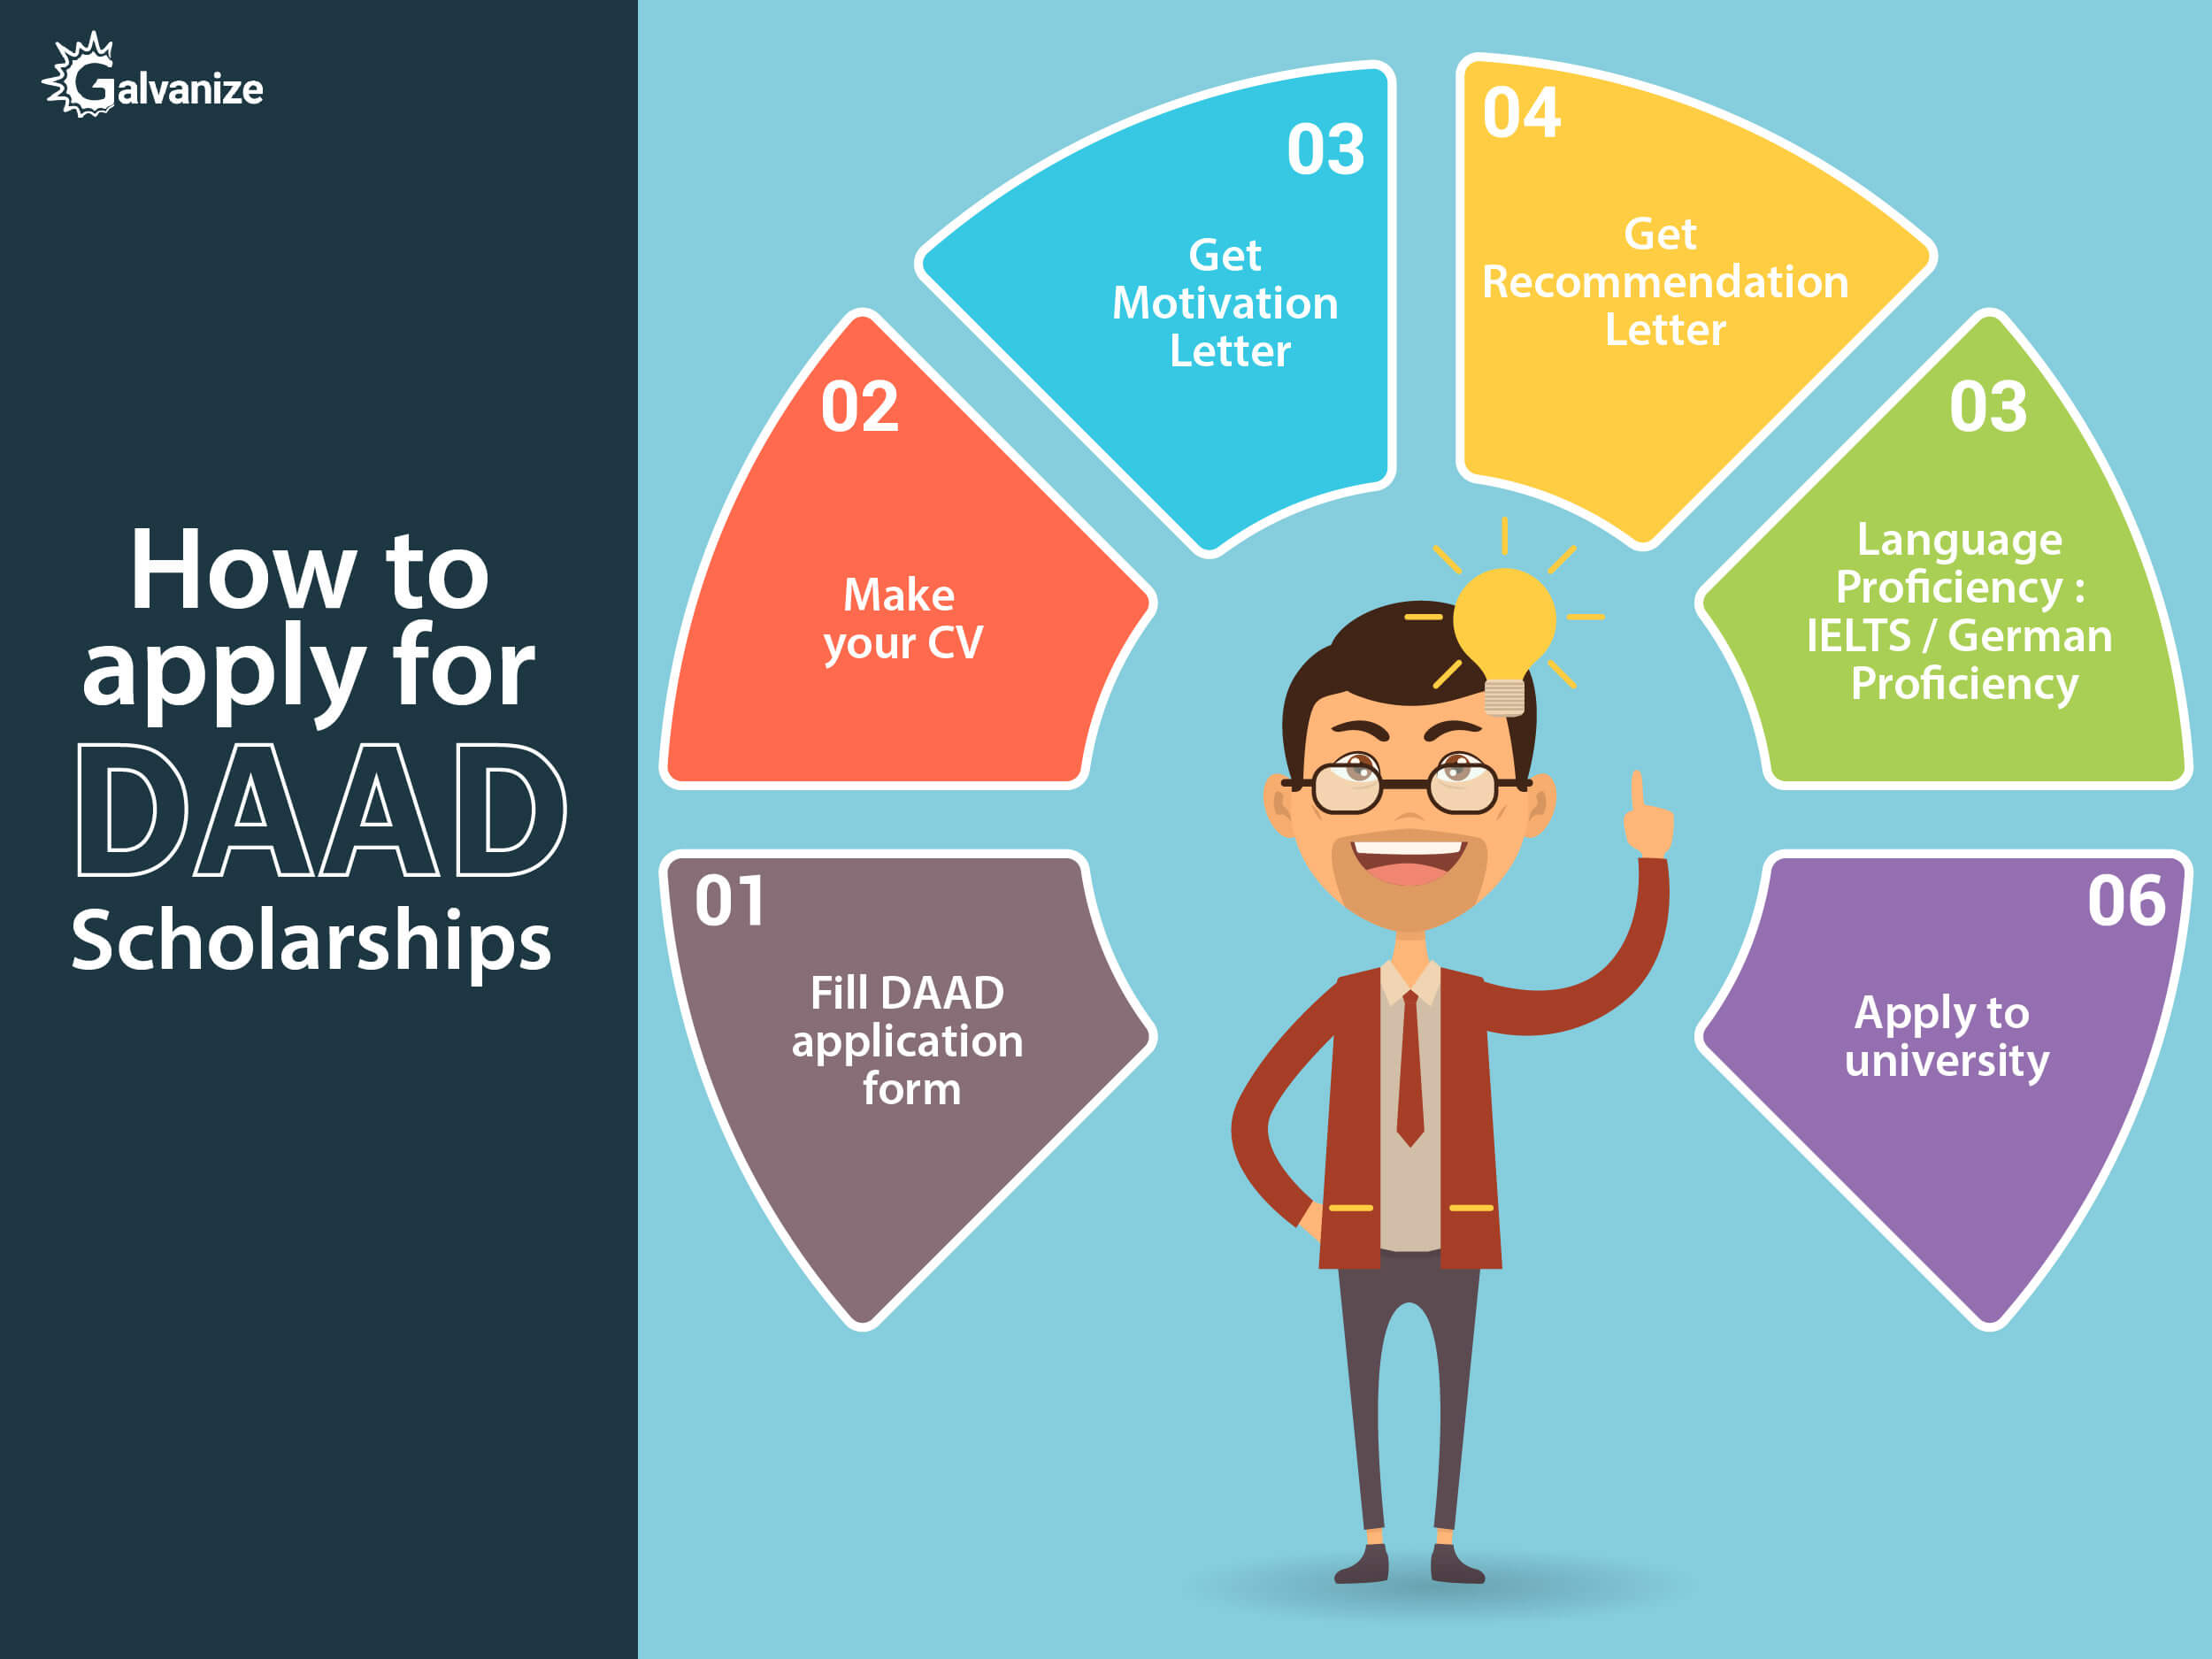 How to apply for DAAD scholarship